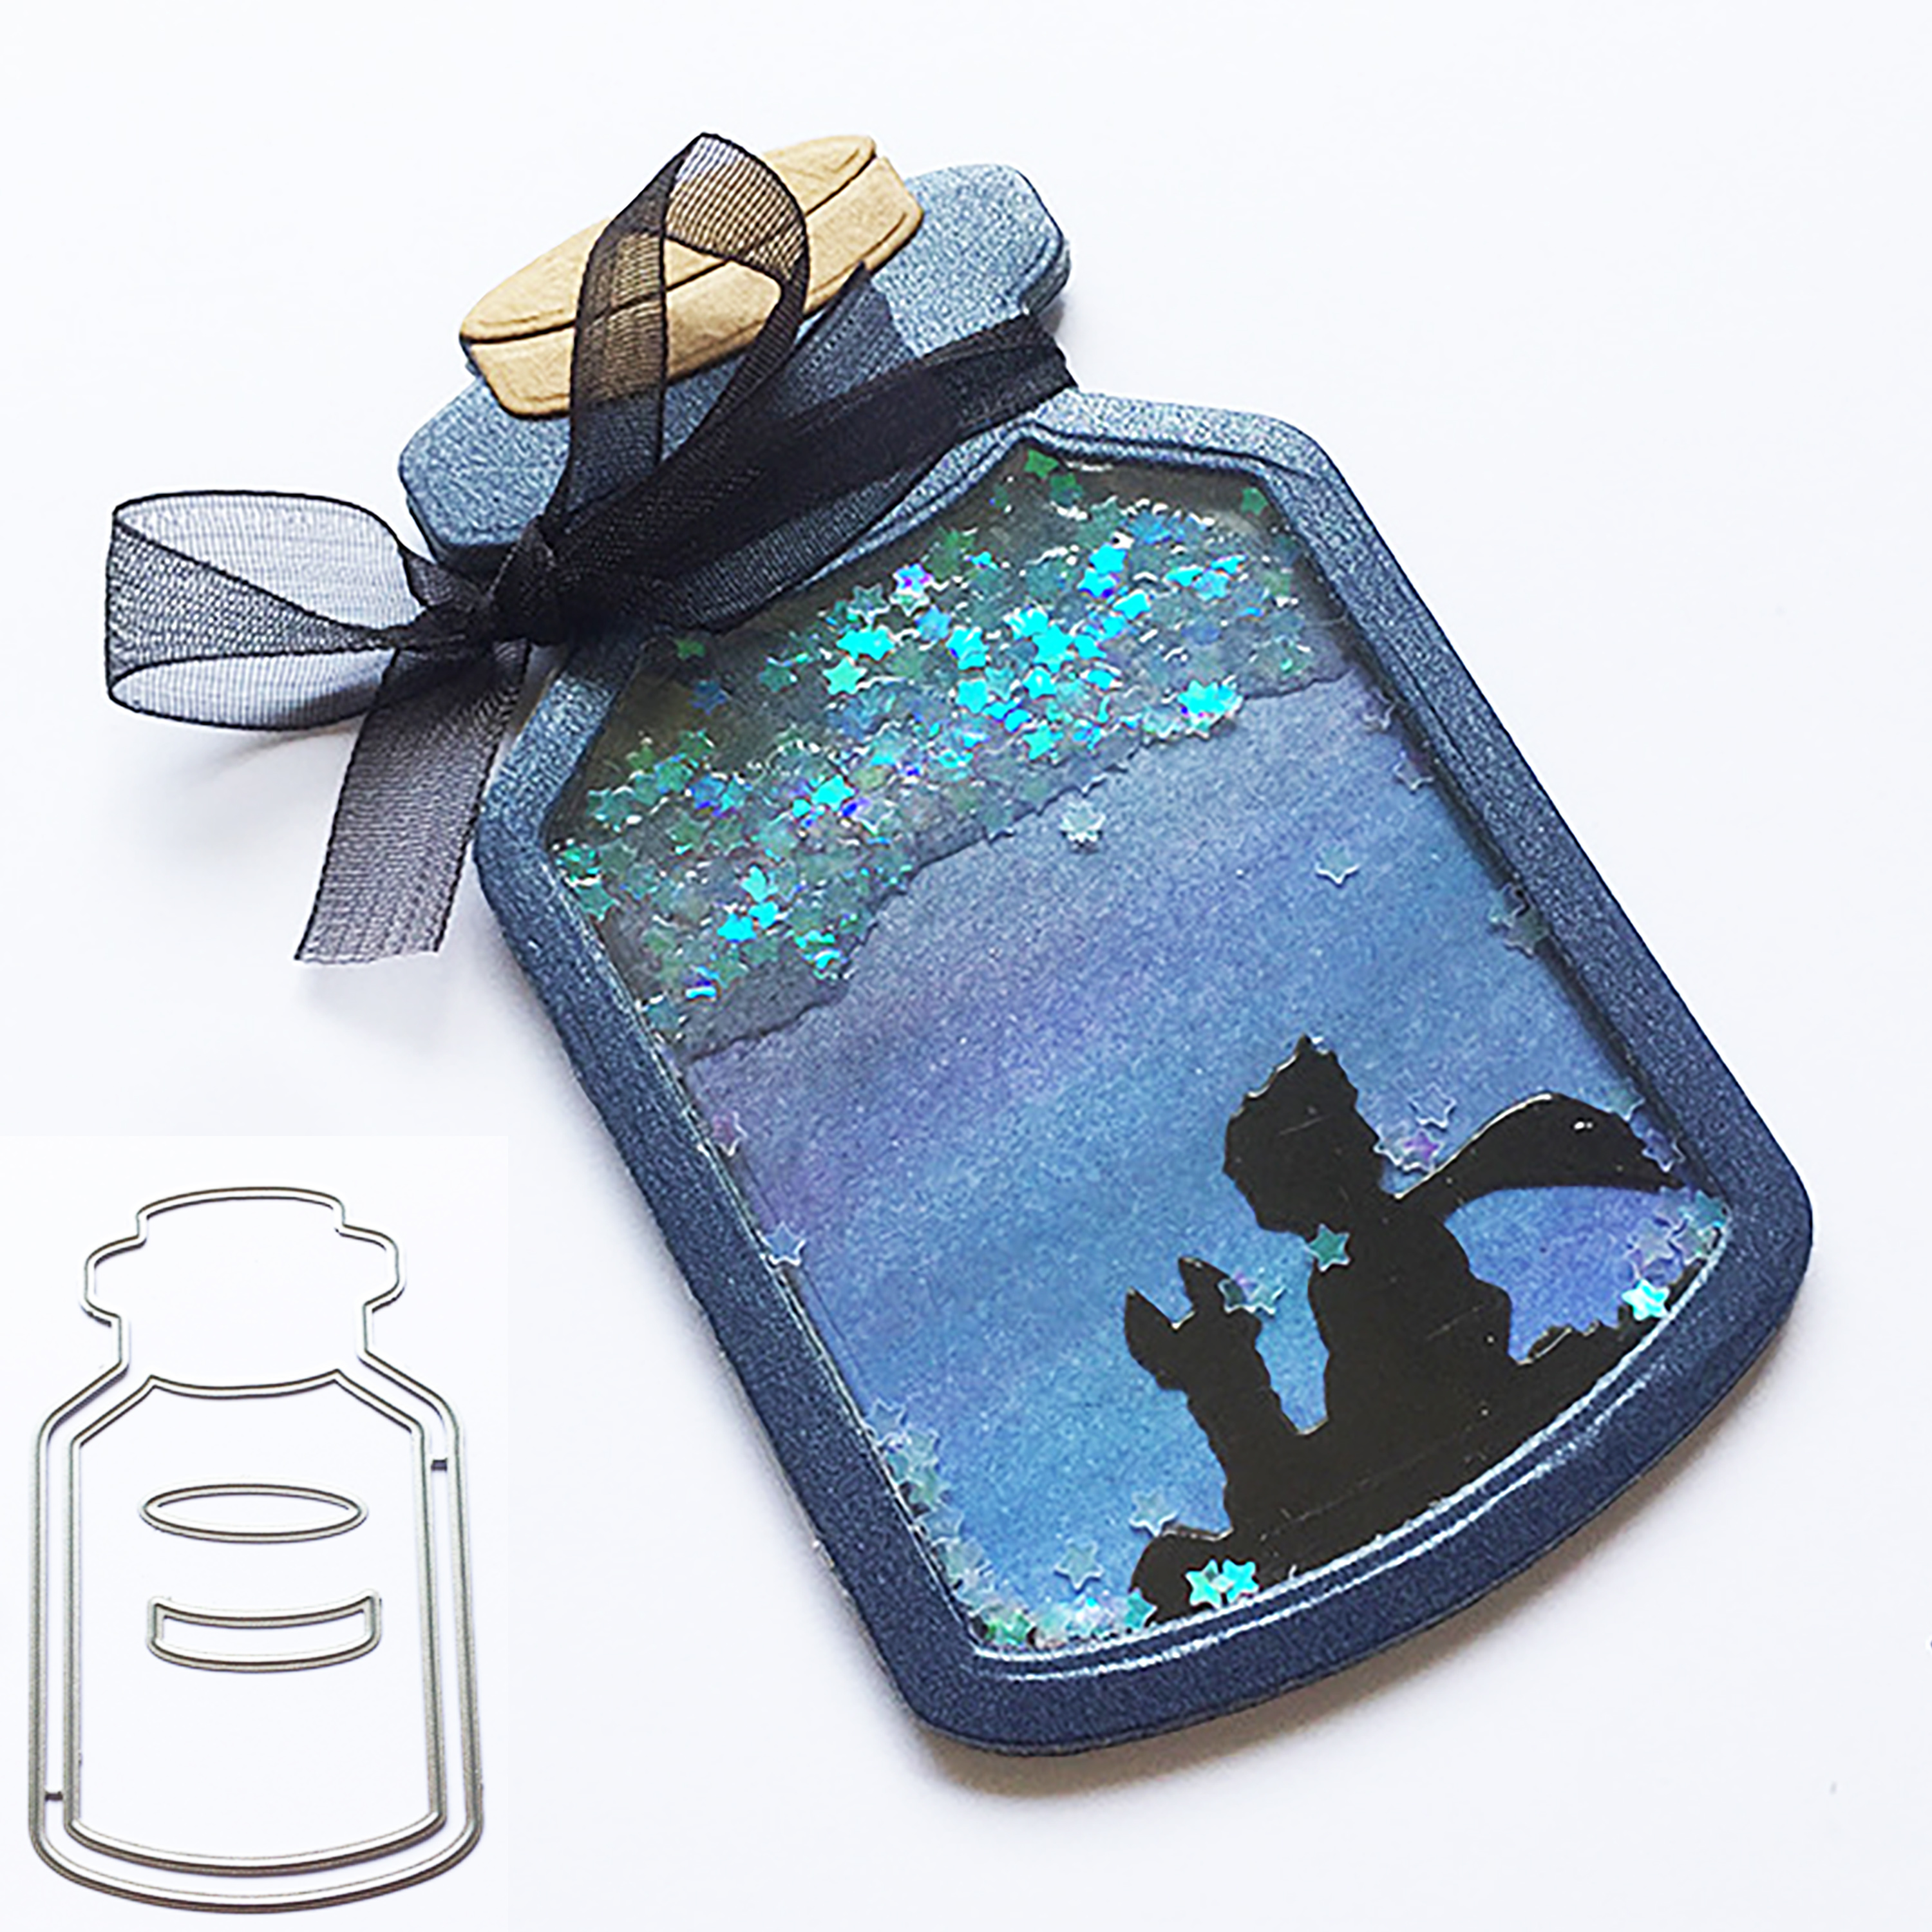 Wish Bottle Cup Metal Cutting Dies For DIY Scrapbooking Album Paper Cards Decorative Craft Embossing Die Cut